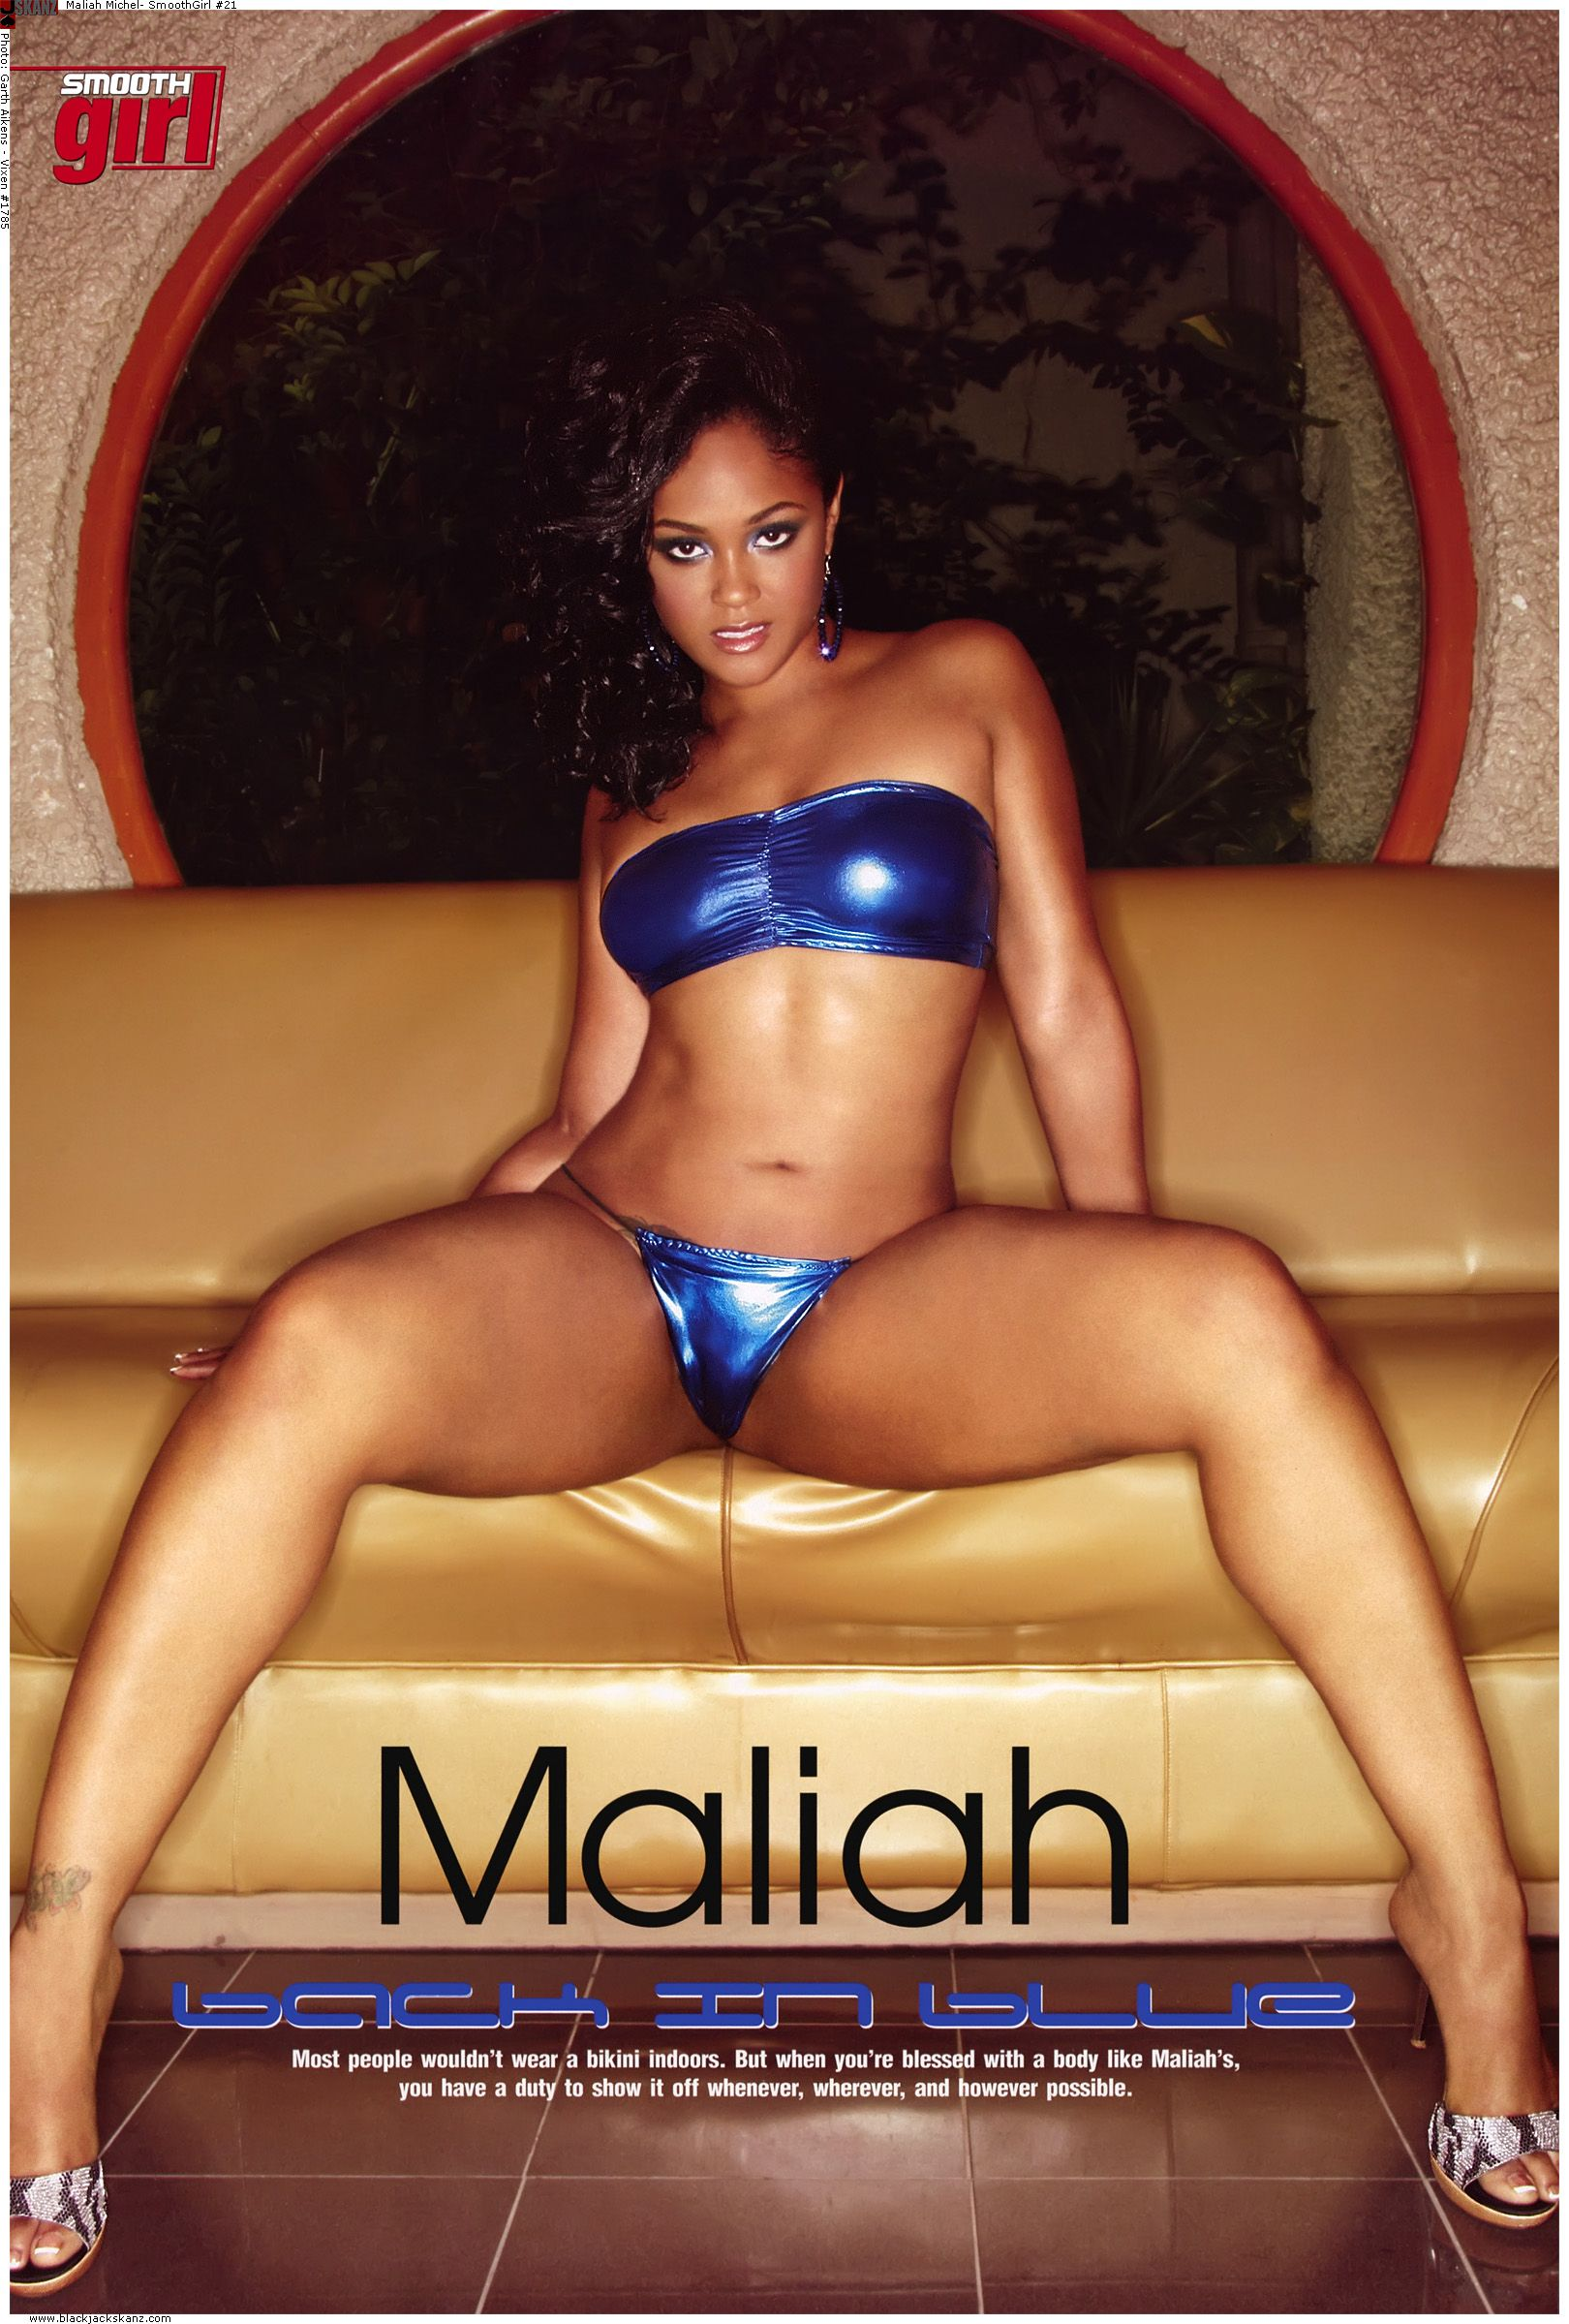 maliah Black michel magazine men